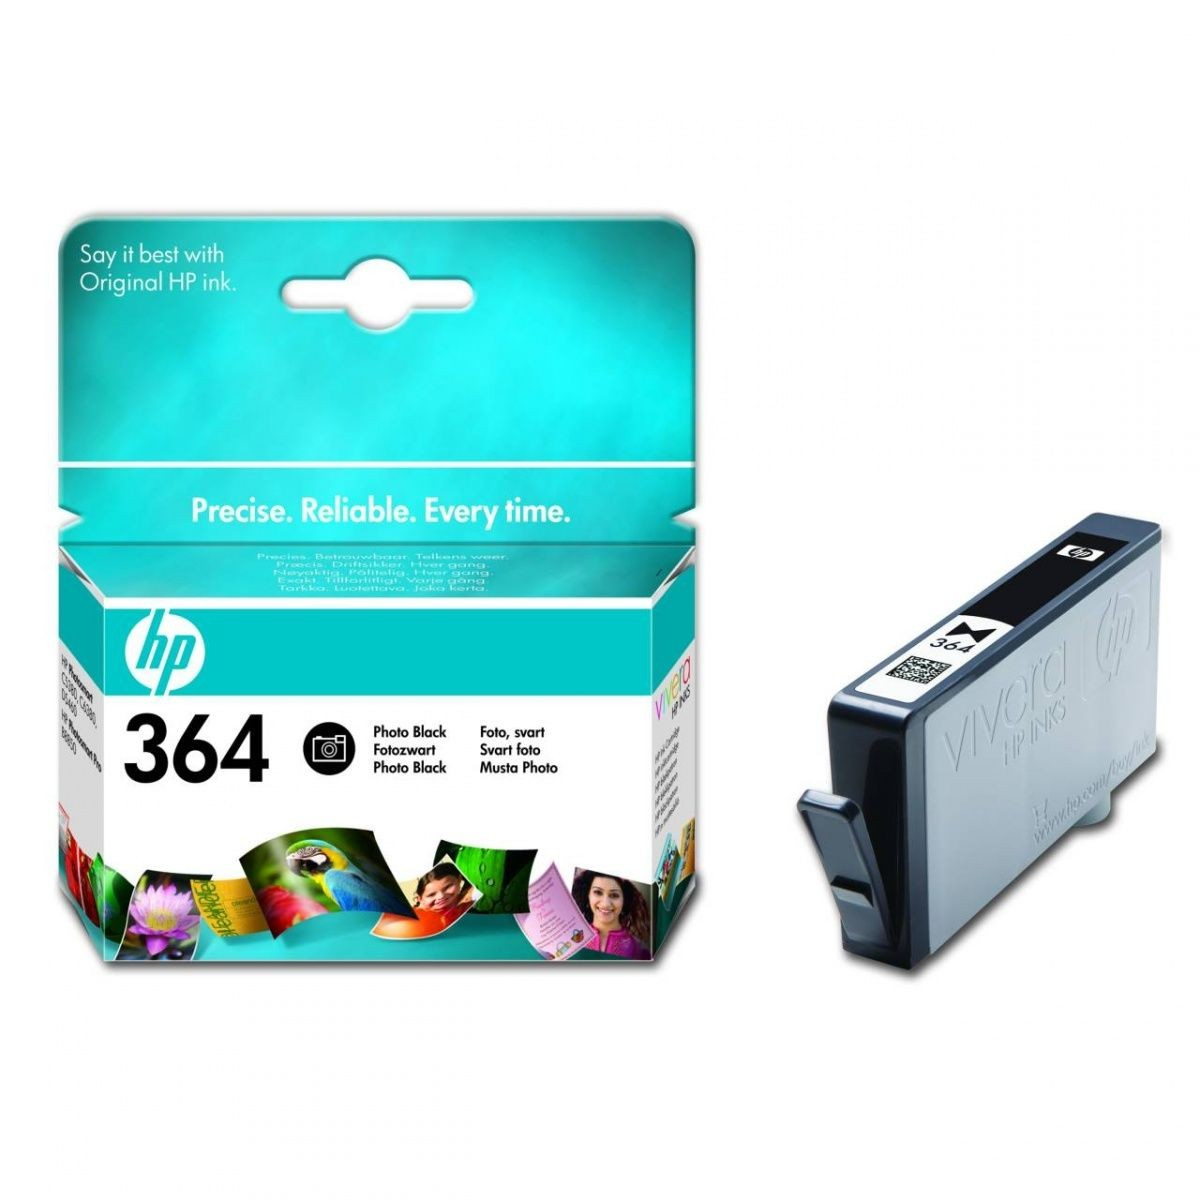 HP tusz 364 photo black Vivera